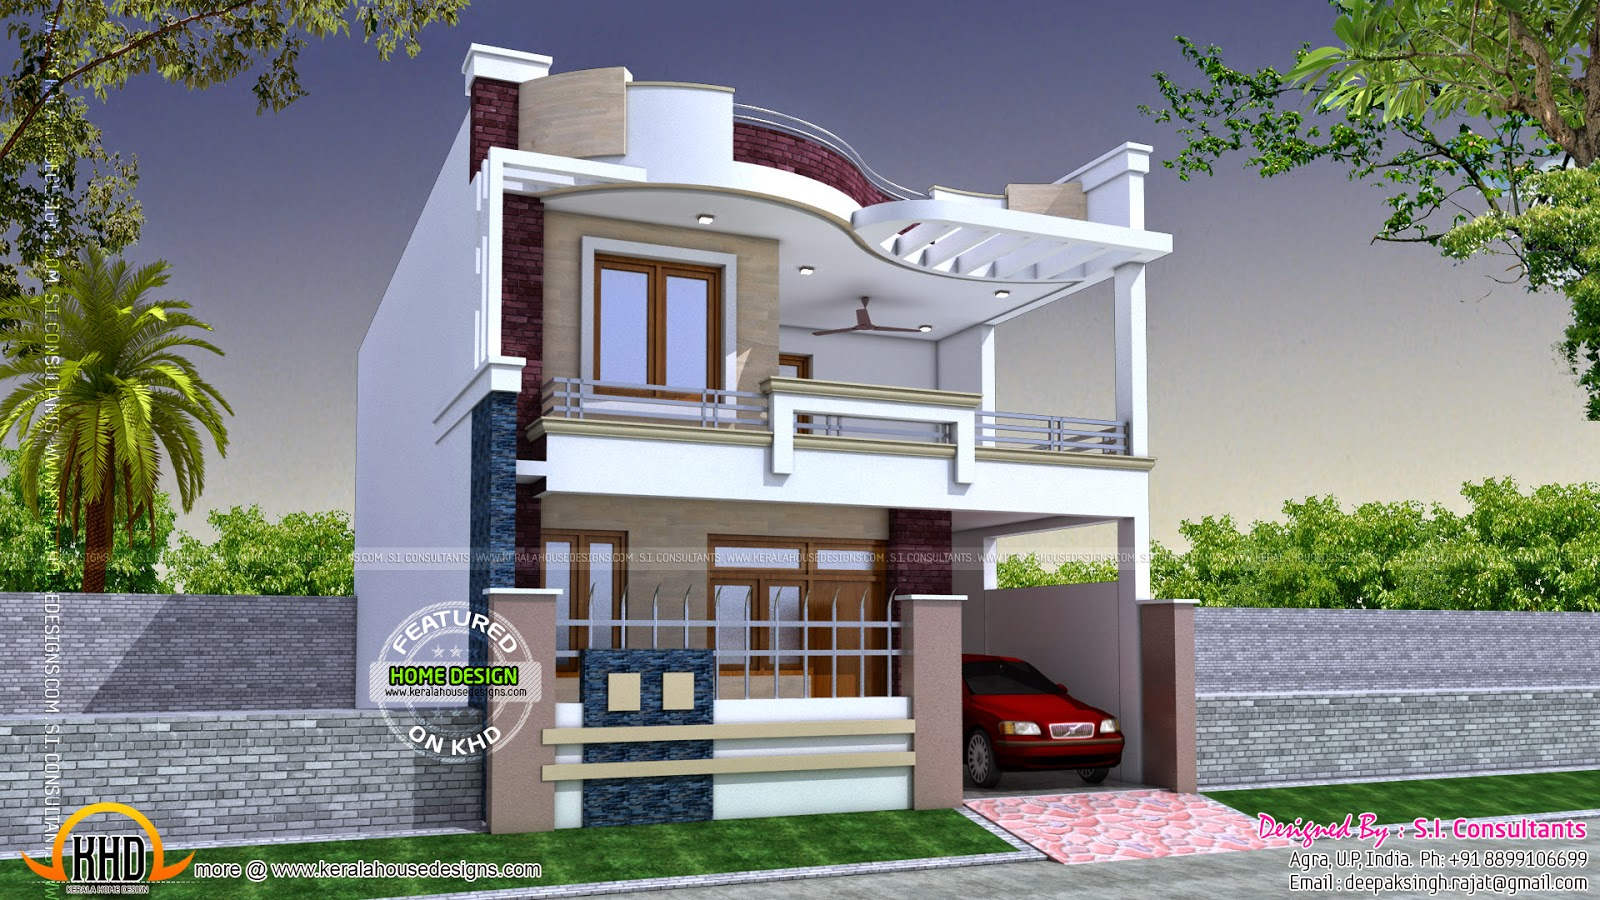 Modern indian home design kerala home design and floor plans for Blue print homes